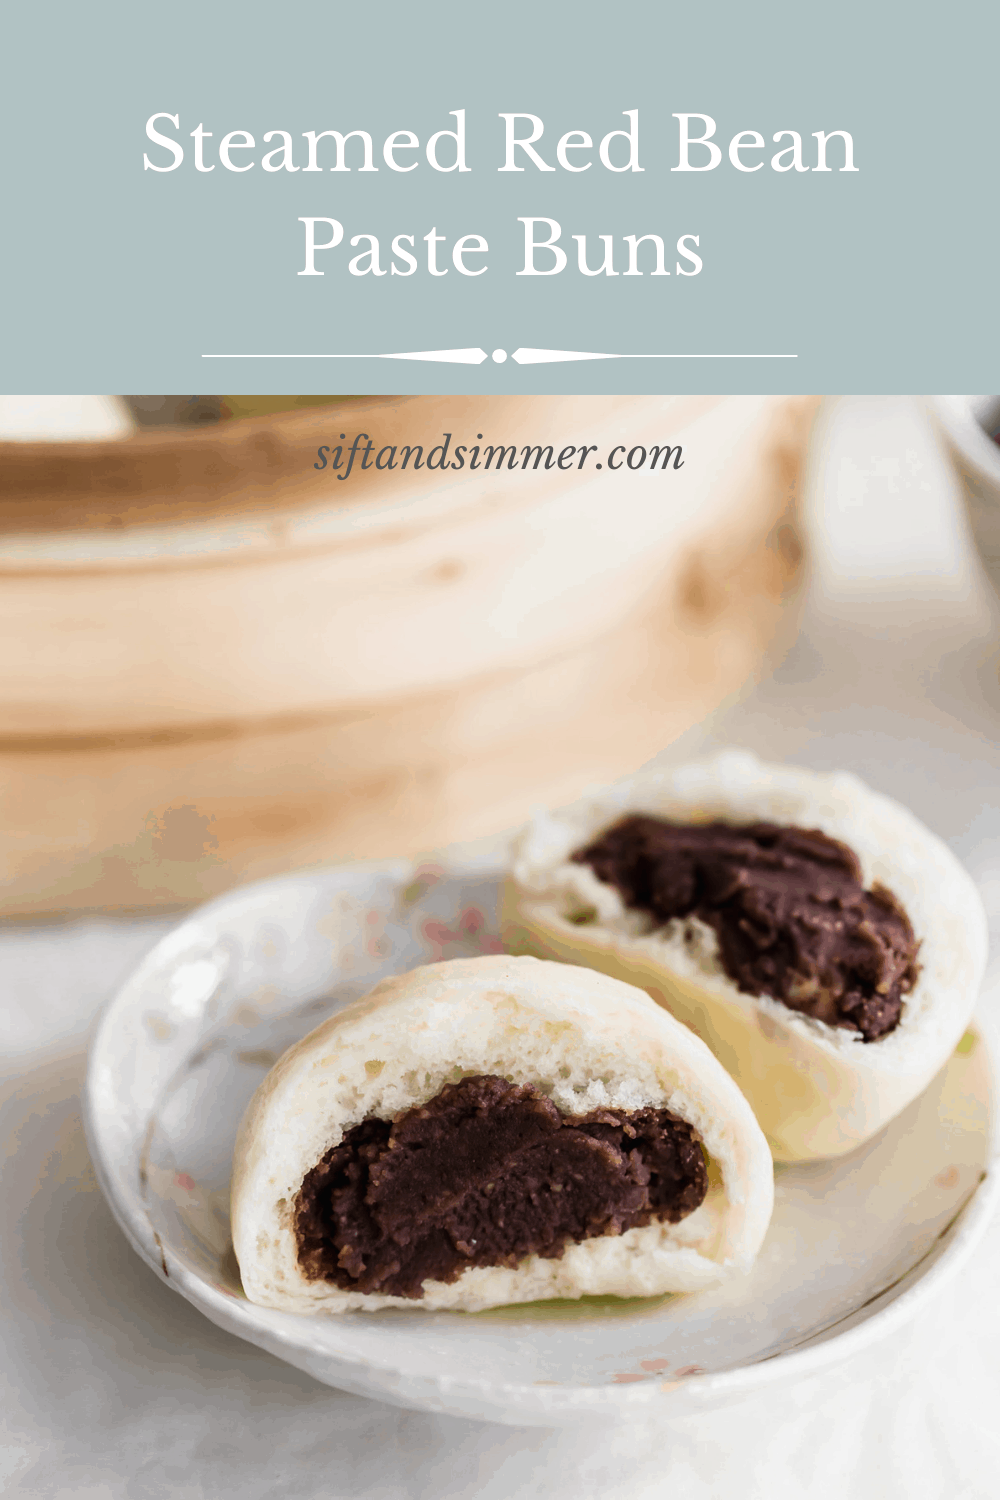 A close up of torn steamed bun revealing red bean paste filling on small plate, with text overlay.